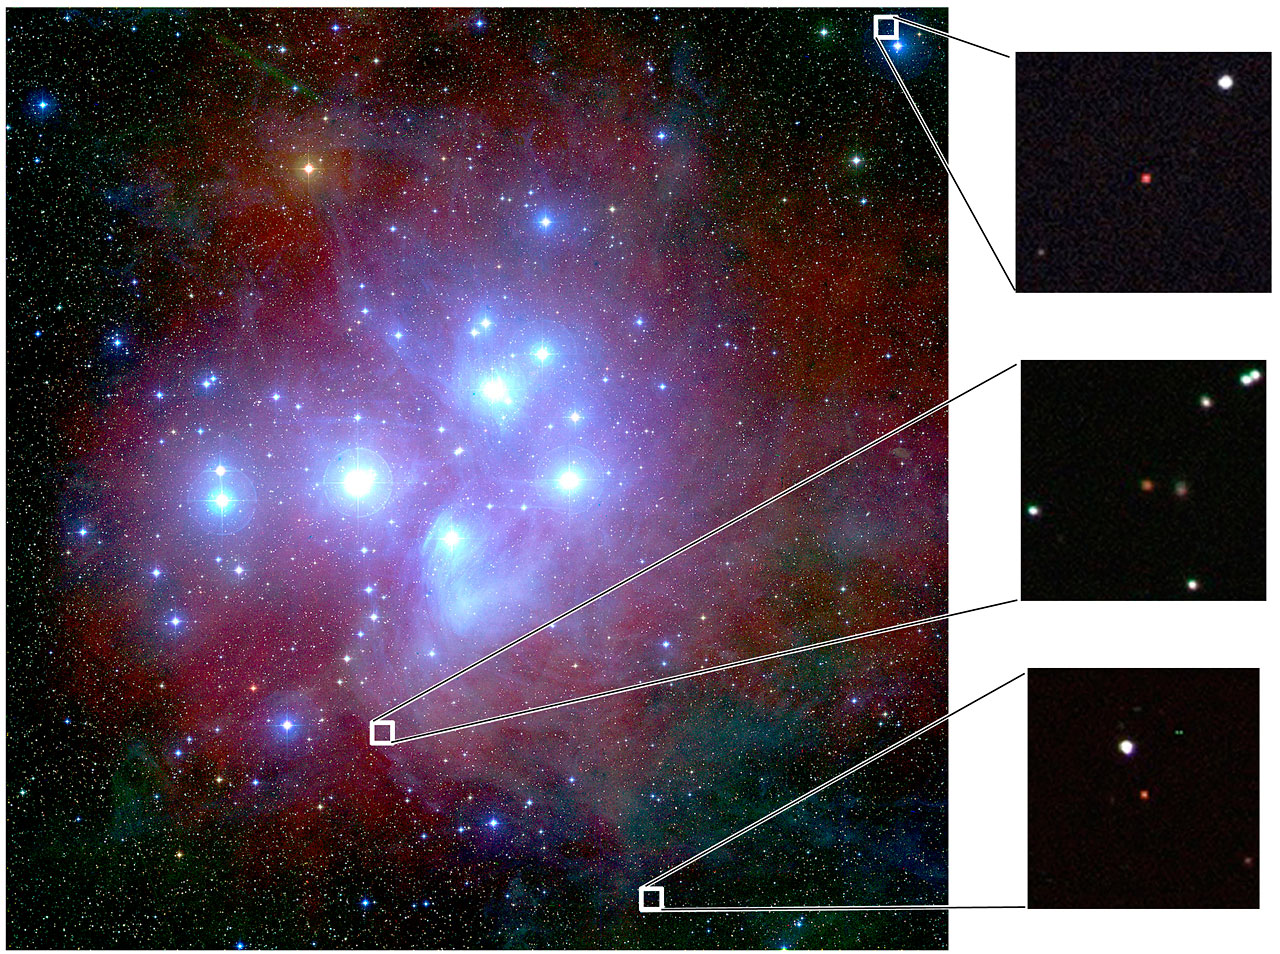 Brown Dwarf Candidates in the Pleiades Cluster